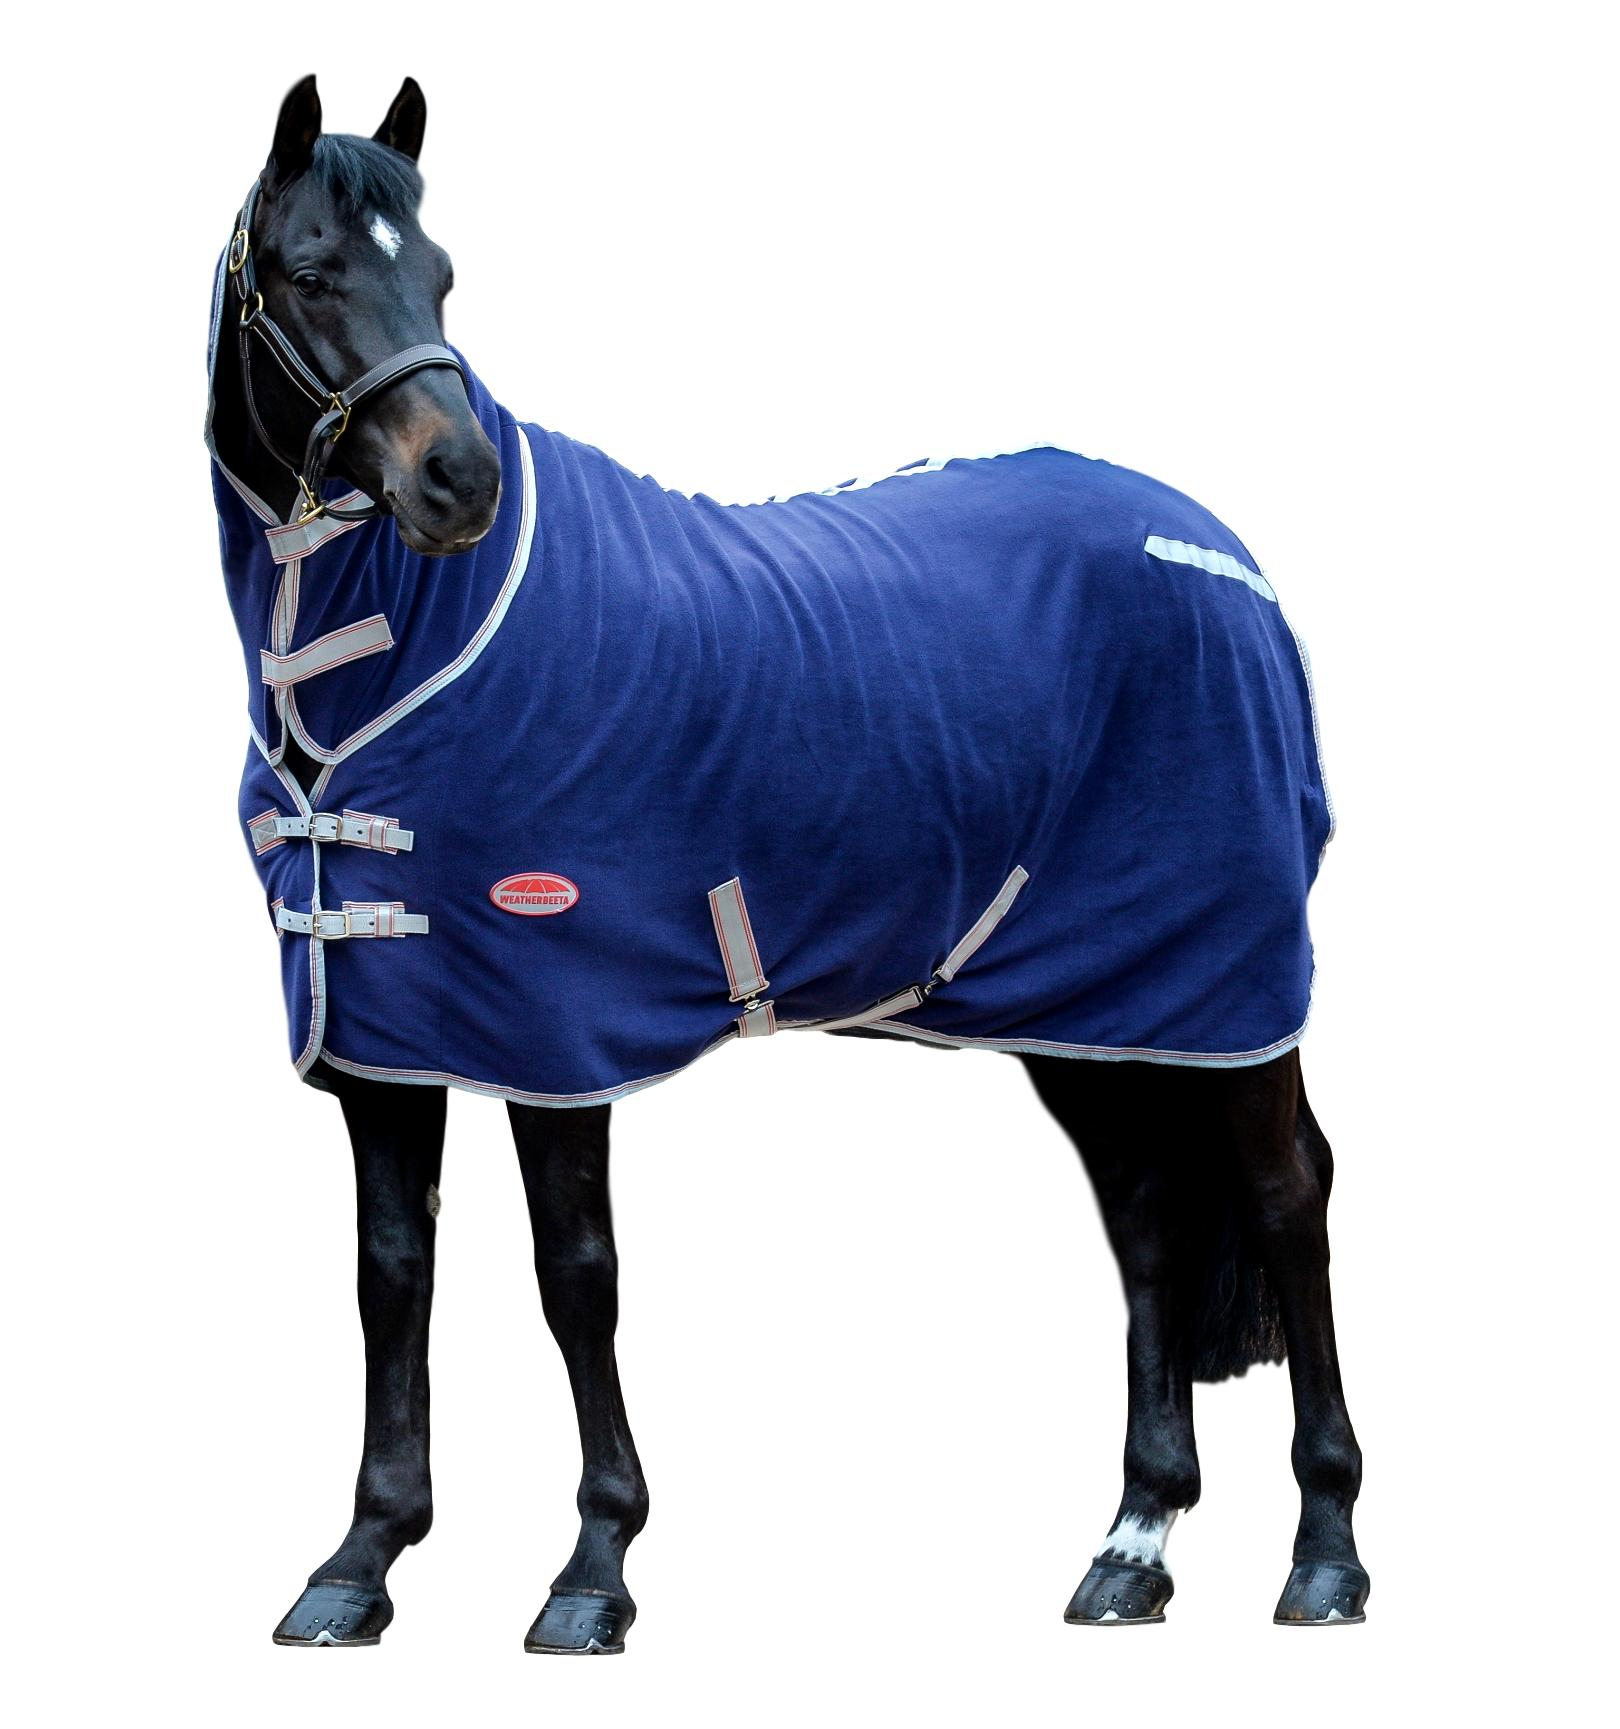 Weatherbeeta-Fleece-Cooler-Sheet-Combo-with-Neck-Cover-and-Lined-Shoulders miniature 8